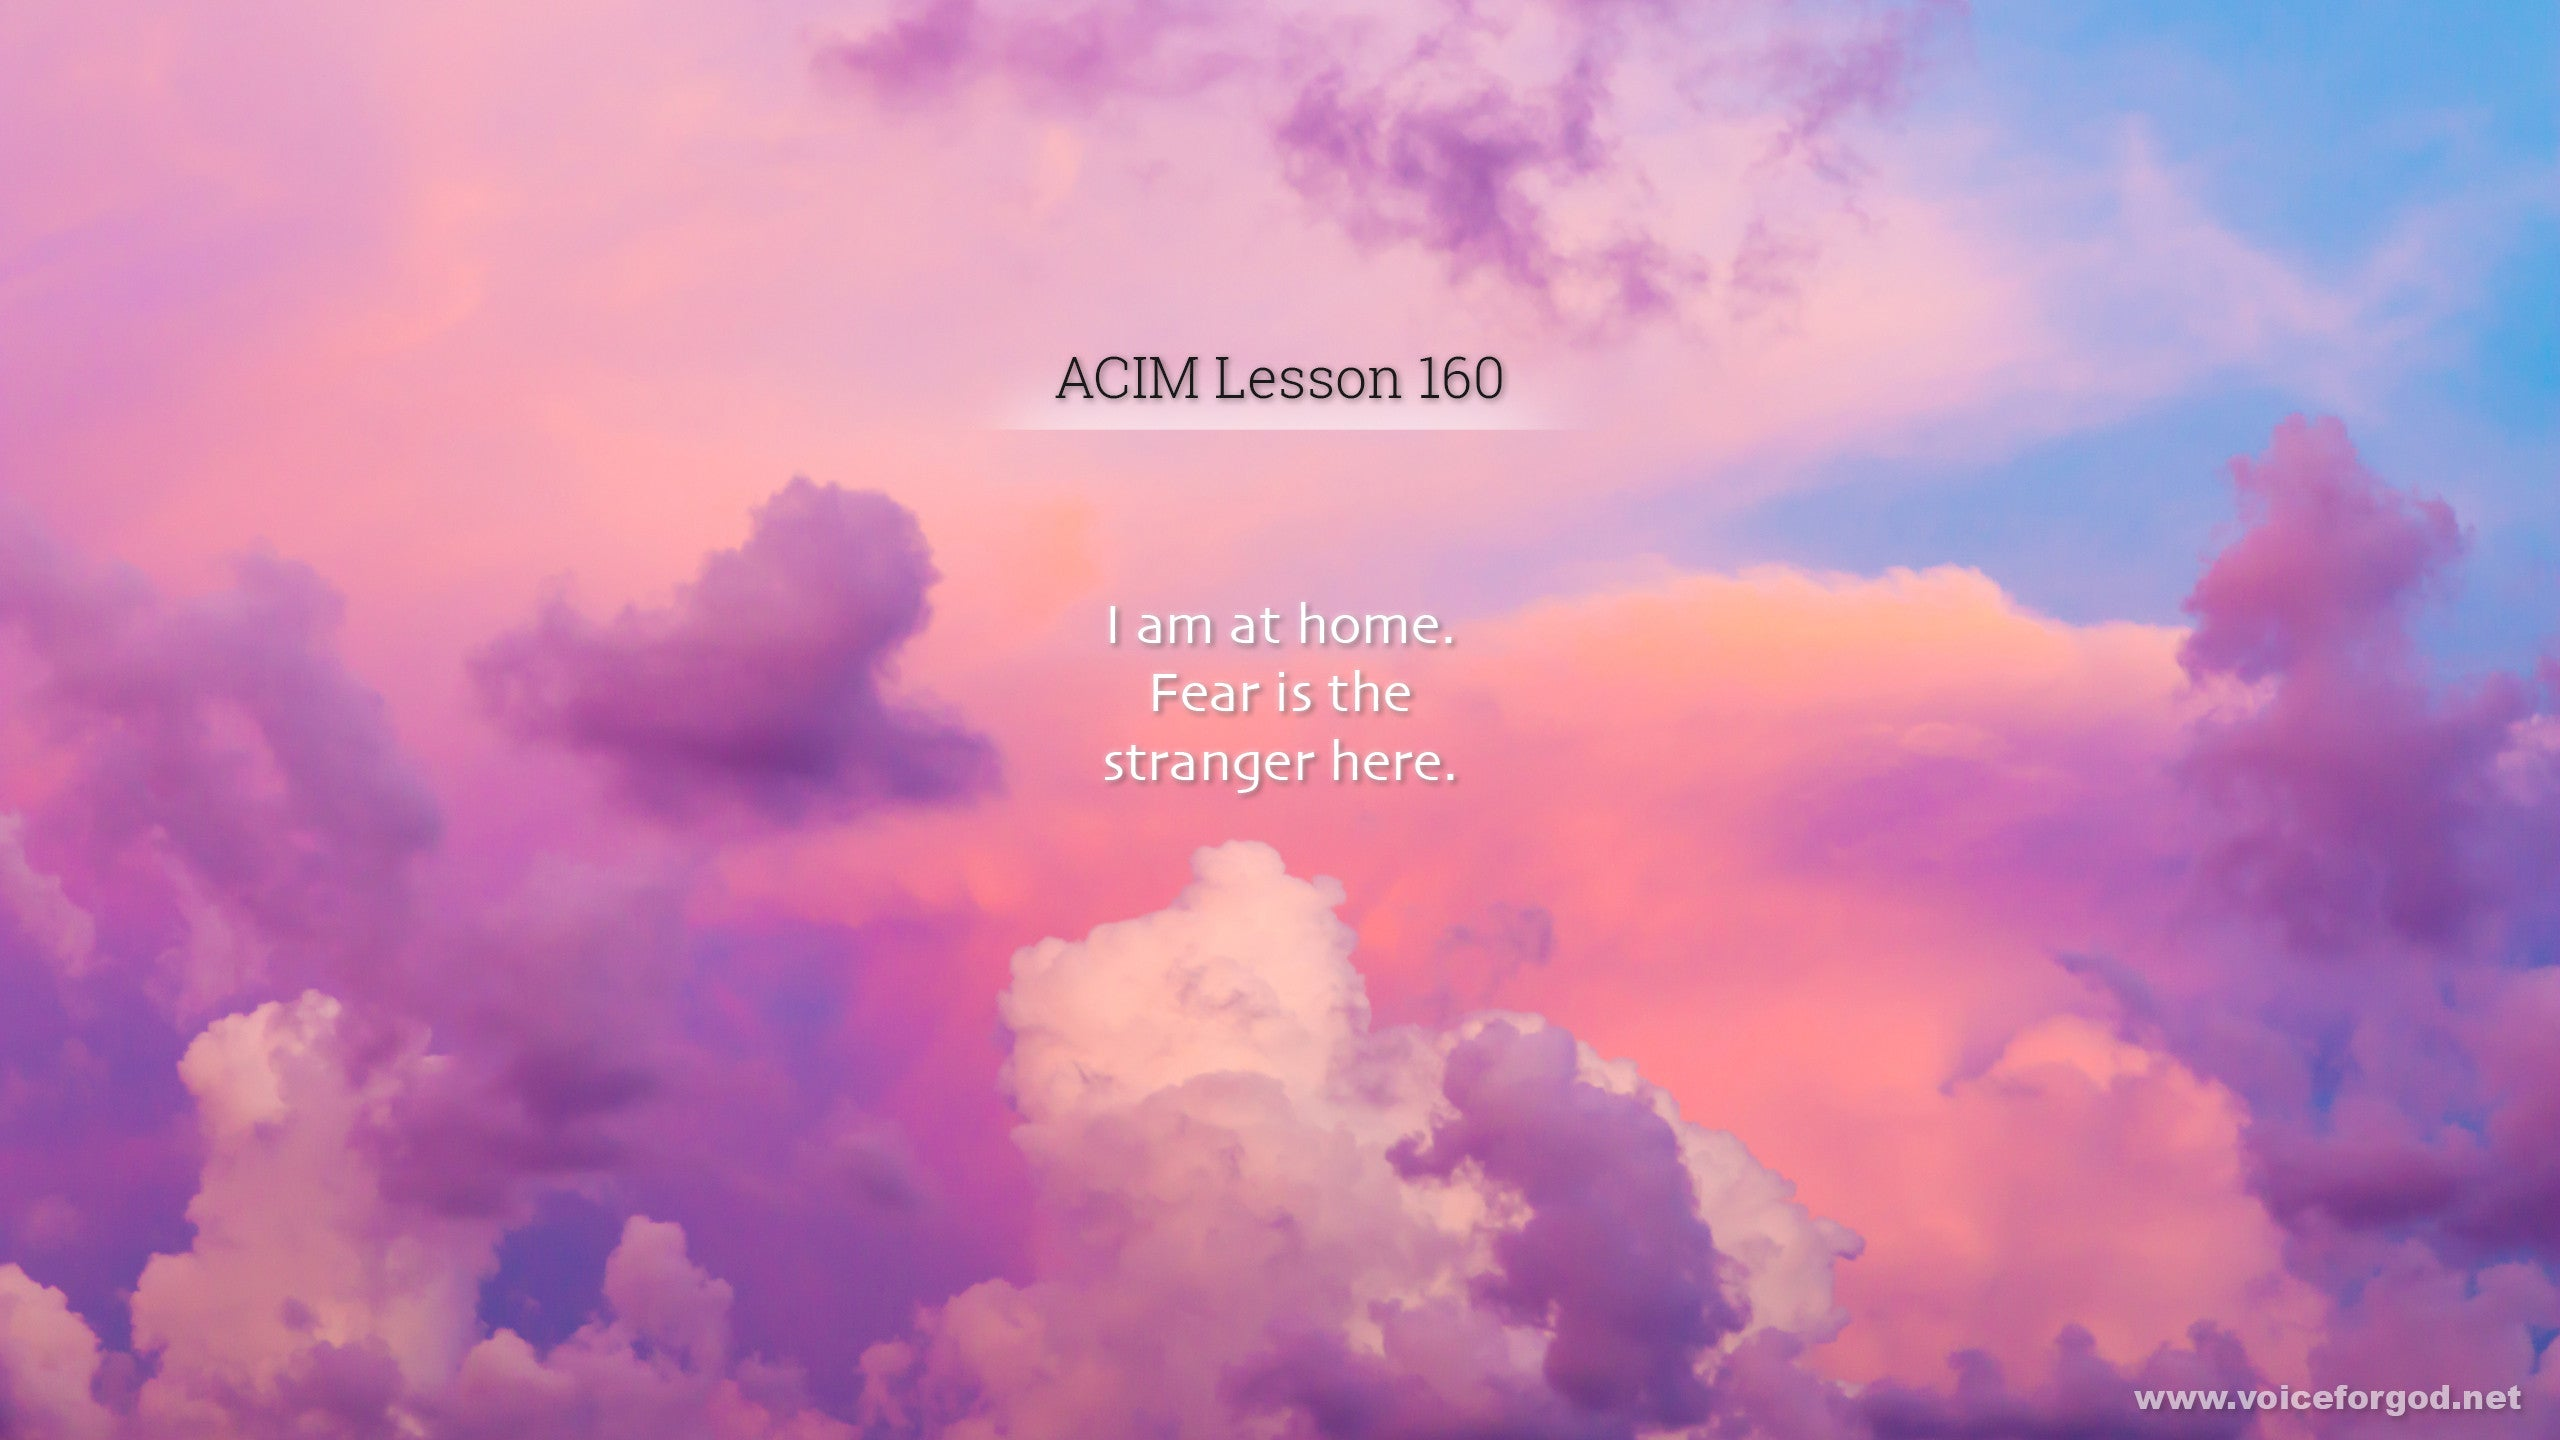 ACIM Lesson 160 - A Course in Miracles Workbook Lesson 160